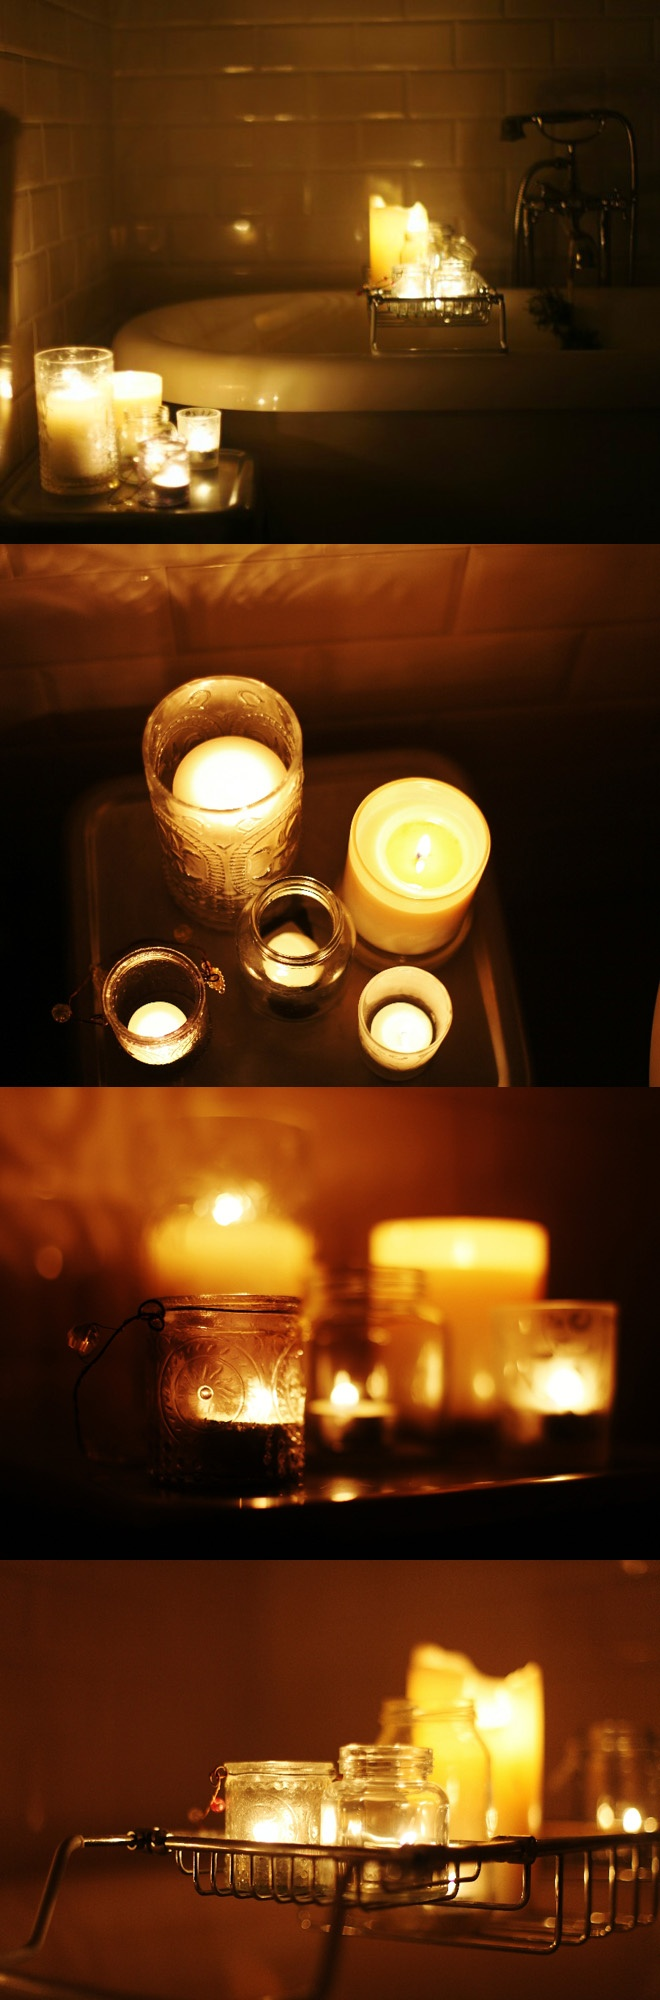 Bathroom Decorating Ideas With Candles best 25+ bathroom candles ideas on pinterest | spa bathroom decor